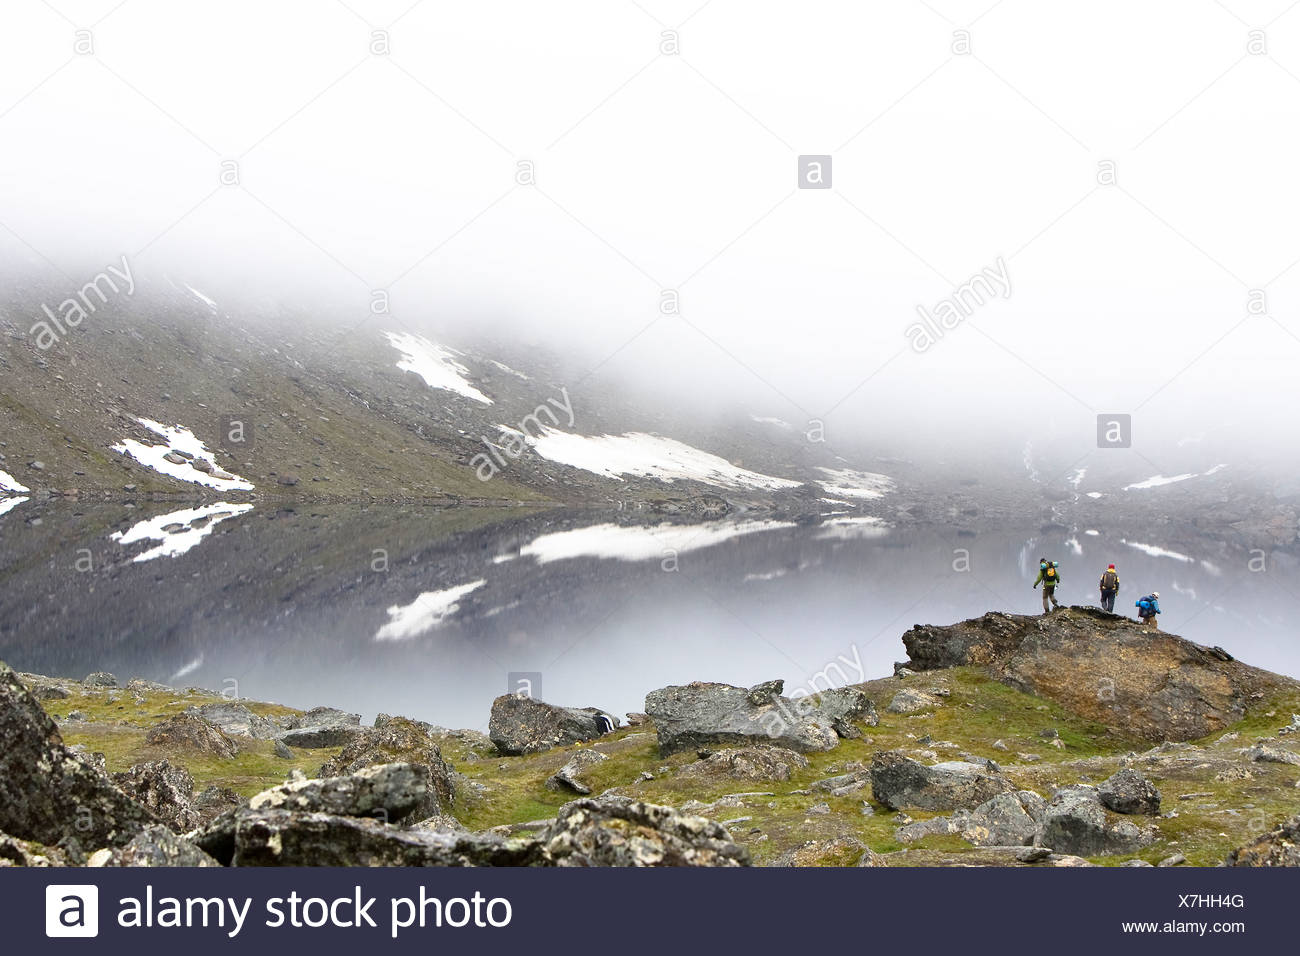 Mid distance shot of three people by the lake in the mist - Stock Image